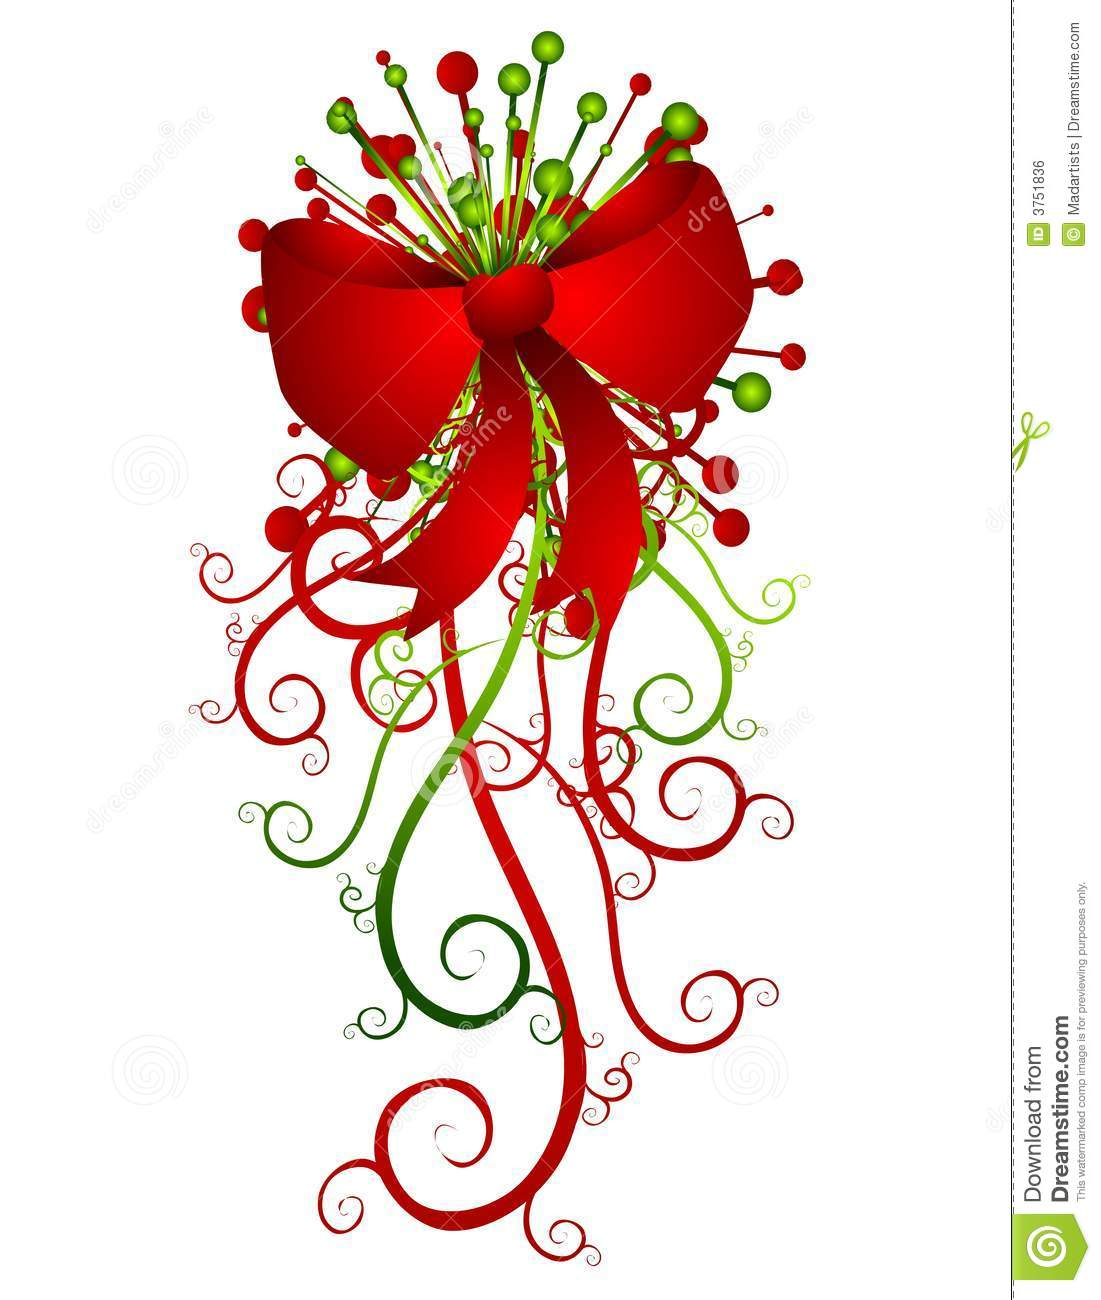 Big Red Christmas Bow And Ribbons Royalty Free Stock Image ...